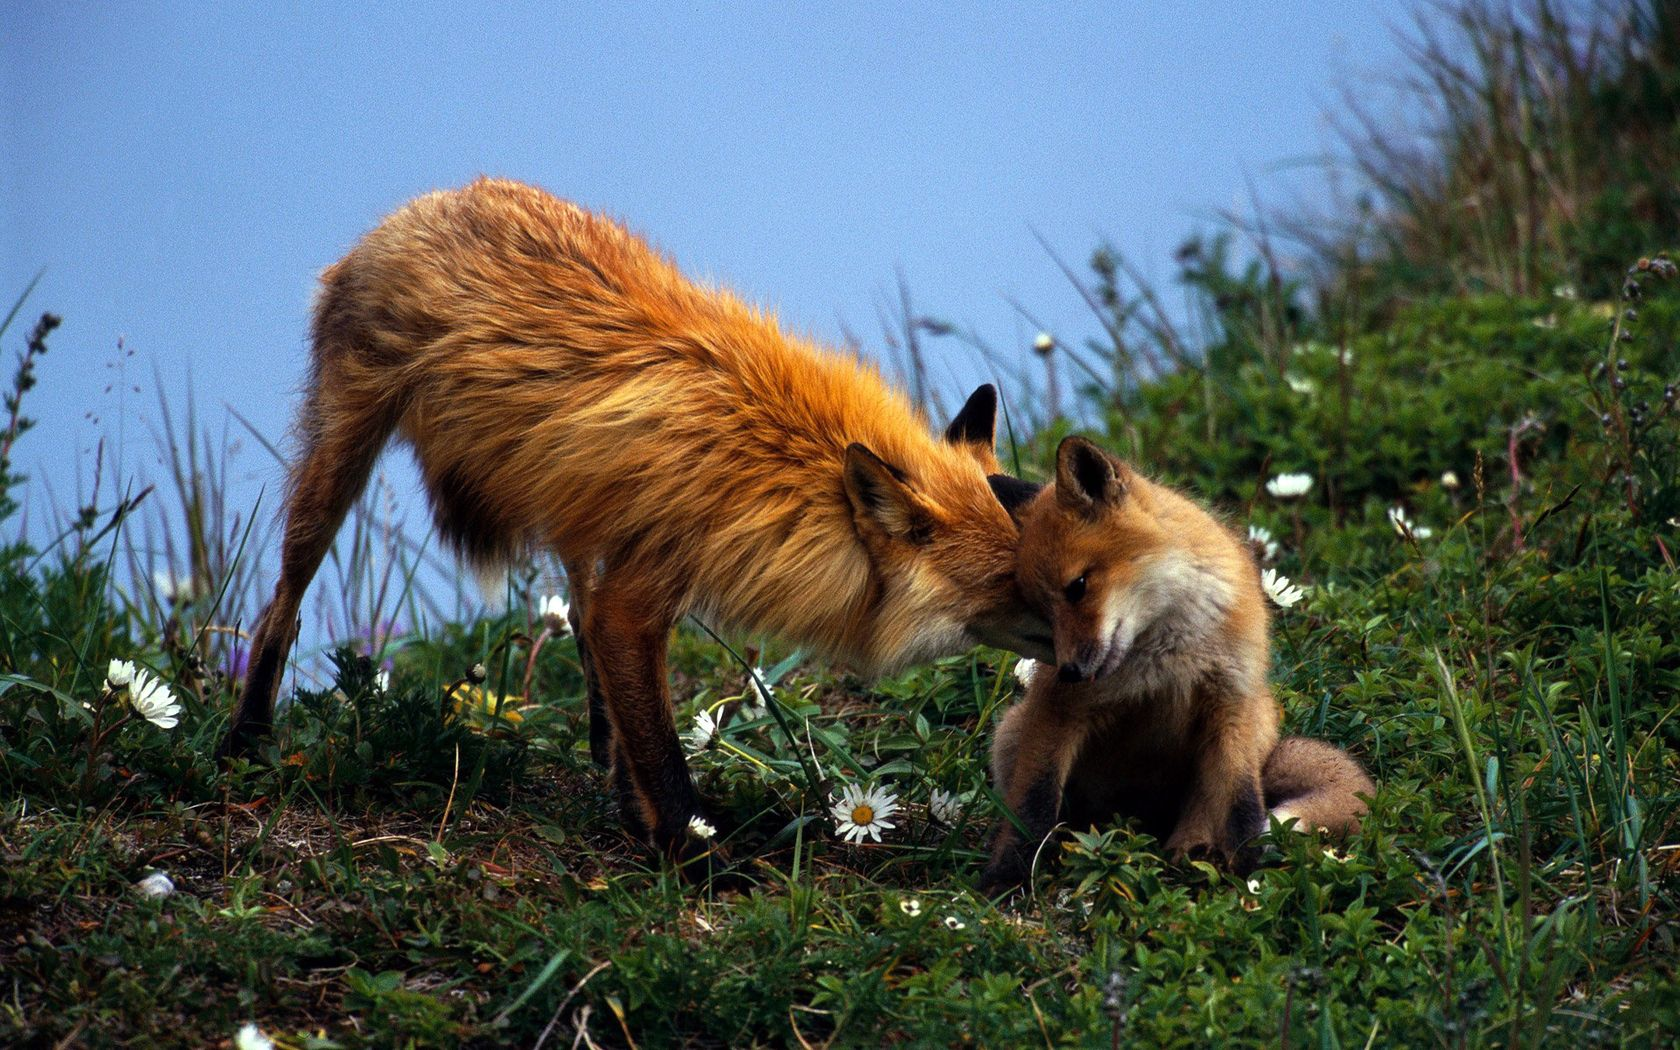 143197 download wallpaper Animals, Fox, Couple, Pair, Grass, Care, Young, Joey, Playful, Flowers screensavers and pictures for free